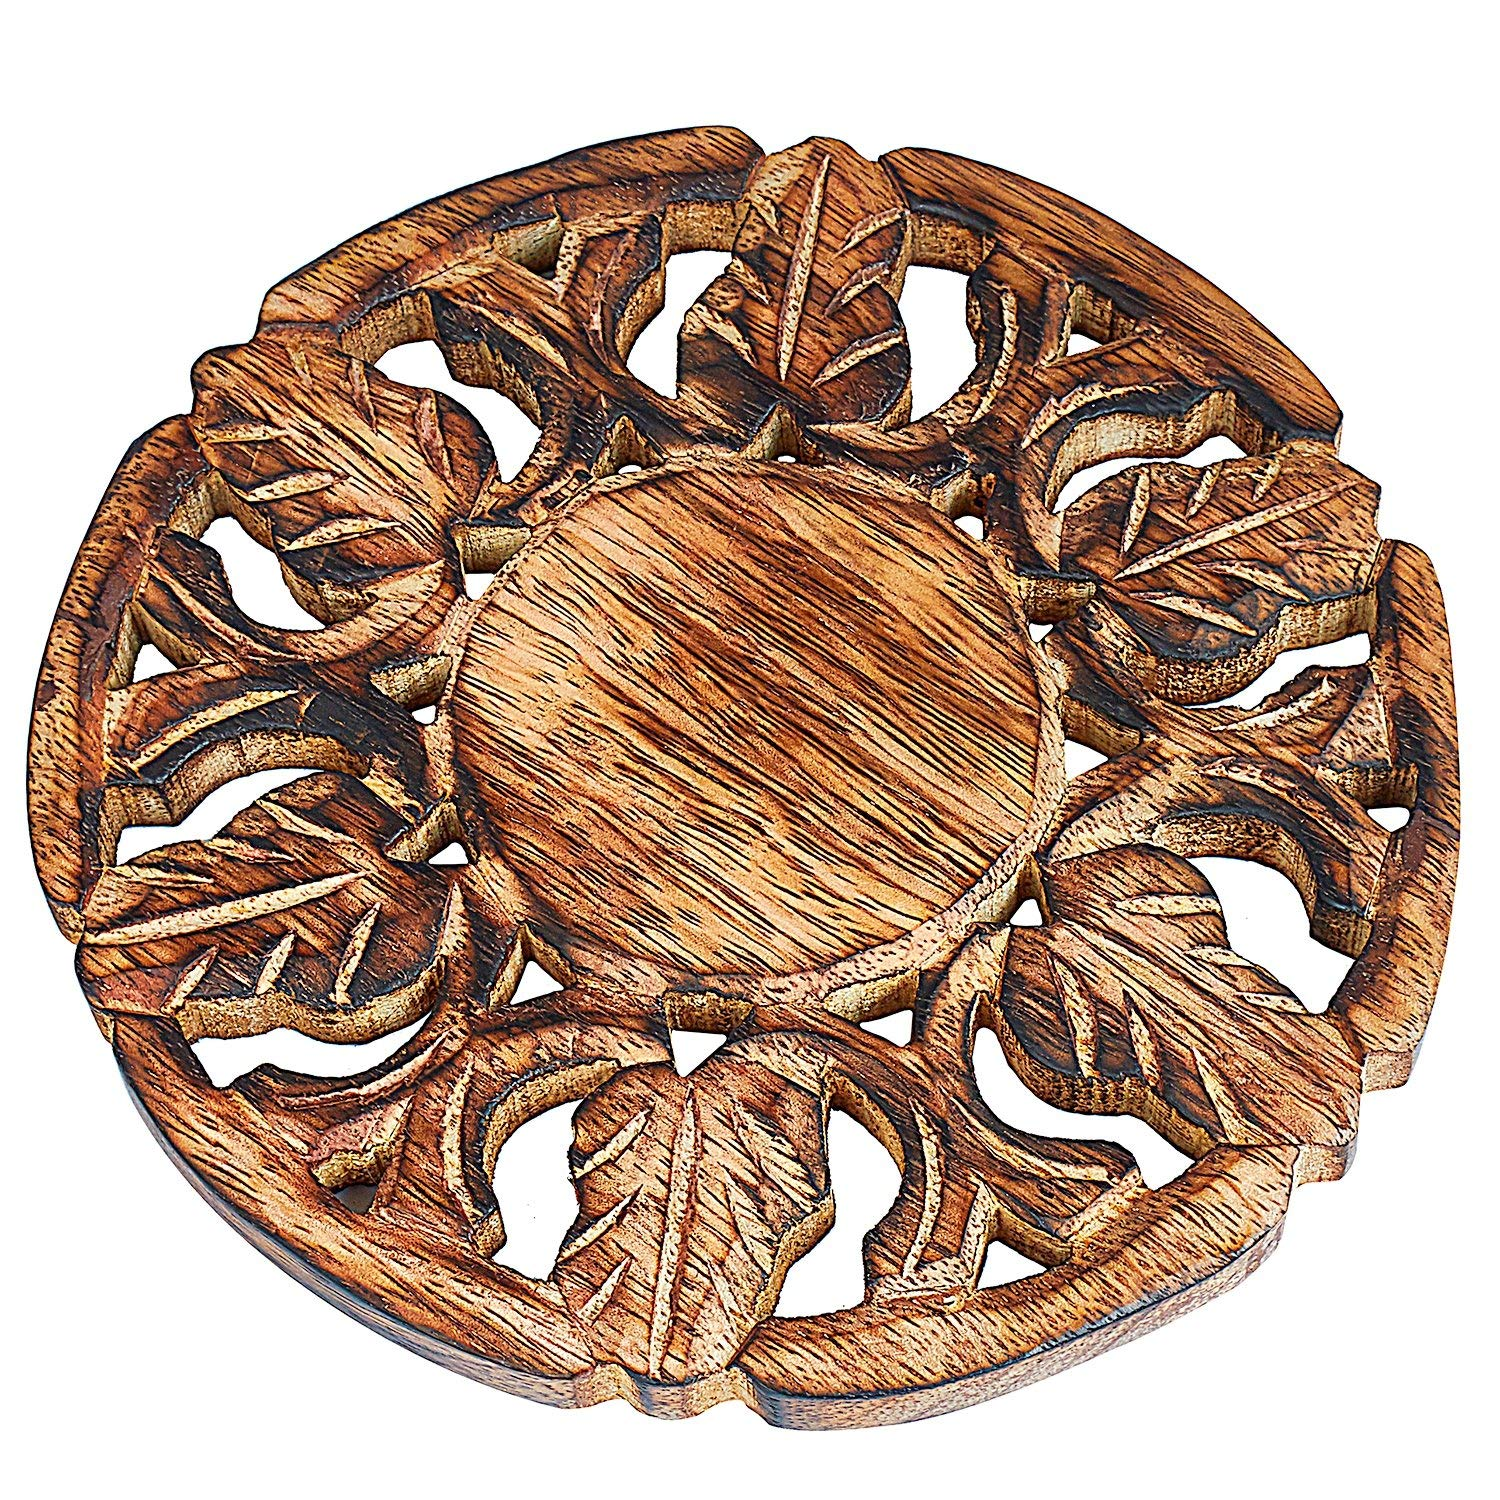 Handmade Wooden Trivet For Hot Dishes Plates /& Pots Holder Hot Pad For Kitchen /& Dining Table Decor Cookware Heat Resistant Rustic Decorative Carvings 6 Inches Tabletop Home /& Dining Table Essentials